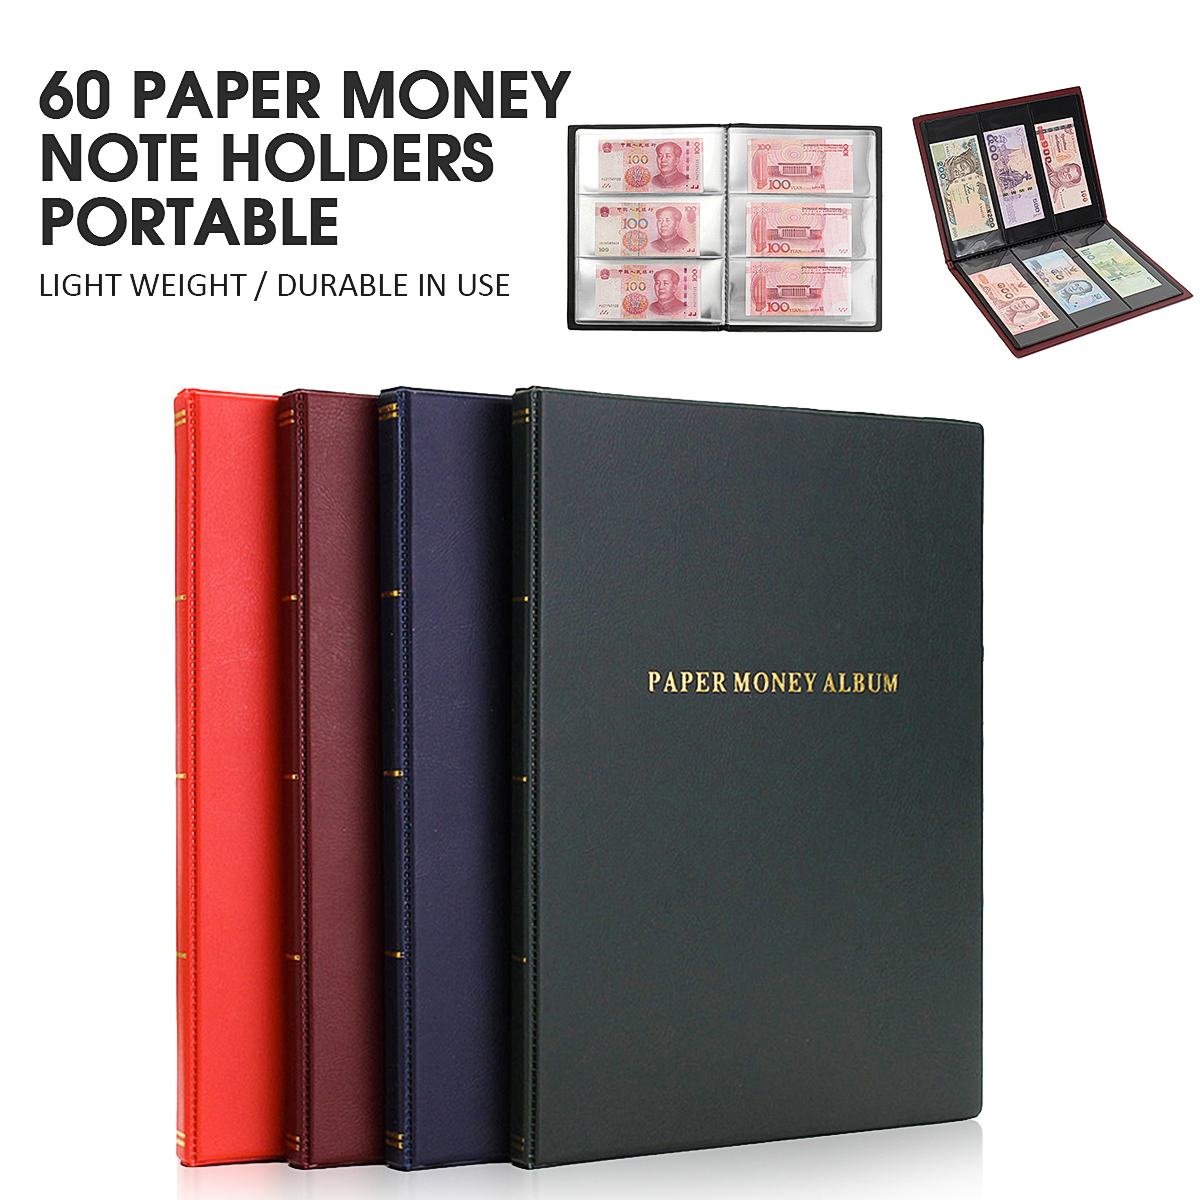 60 Paper Money Note Holders Collection Collecting Storage Pockets Album Book 295x225x15mm Card Holder & Note Holder 120 pockets coins album collection book mini penny coin storage album book collecting coin holders for collector gifts supplies